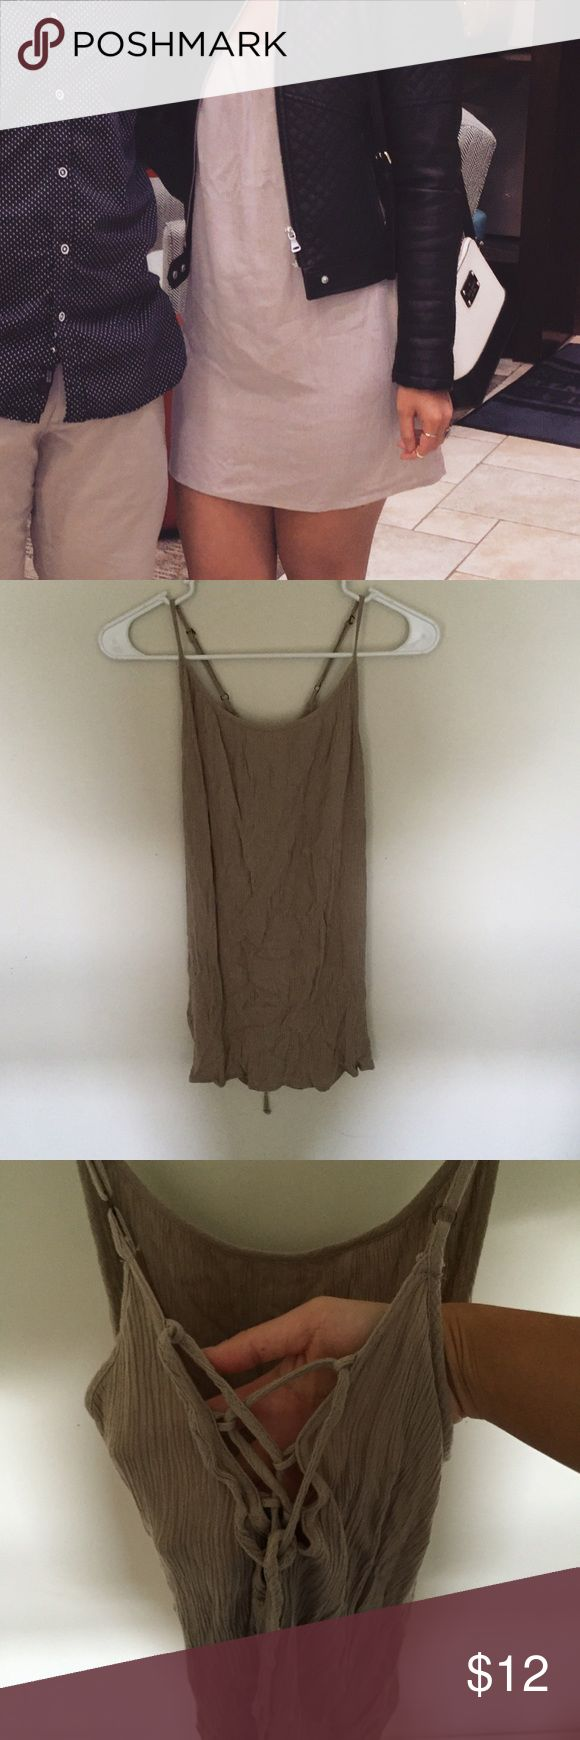 Cami dress Only worn once beige cami dress that laces up in the back. Super cute and casual and can be dressed up or down Forever 21 Dresses Mini